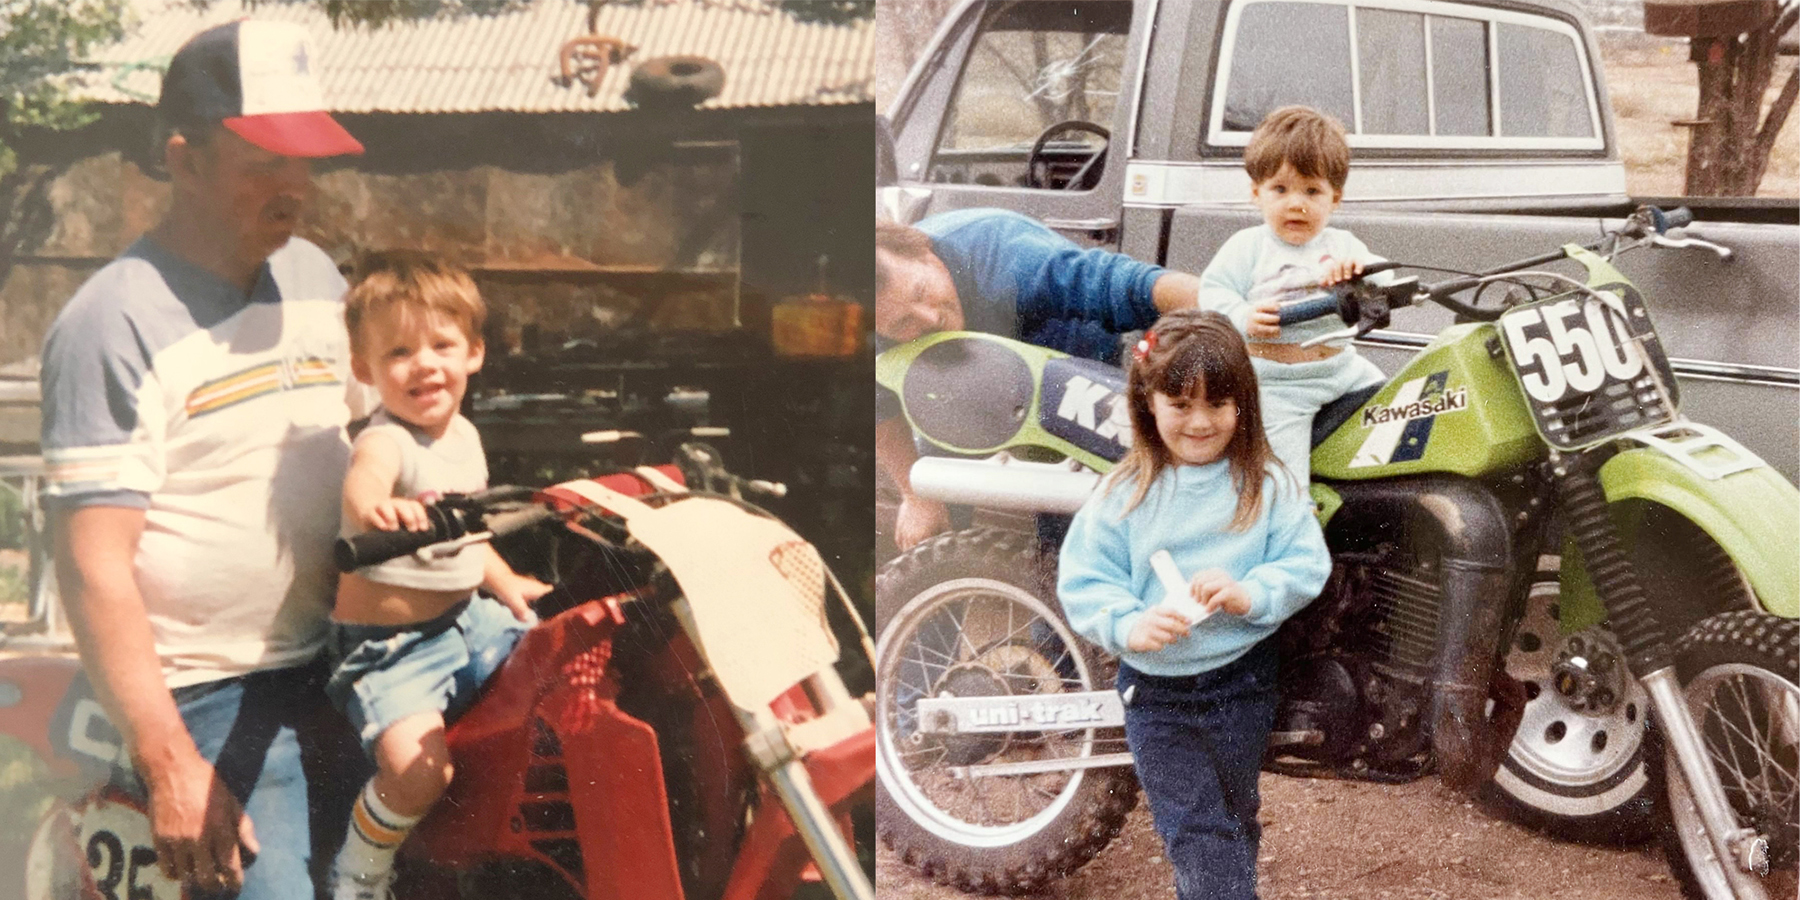 Jarred Elrod as a small child with vintage dirtbikes